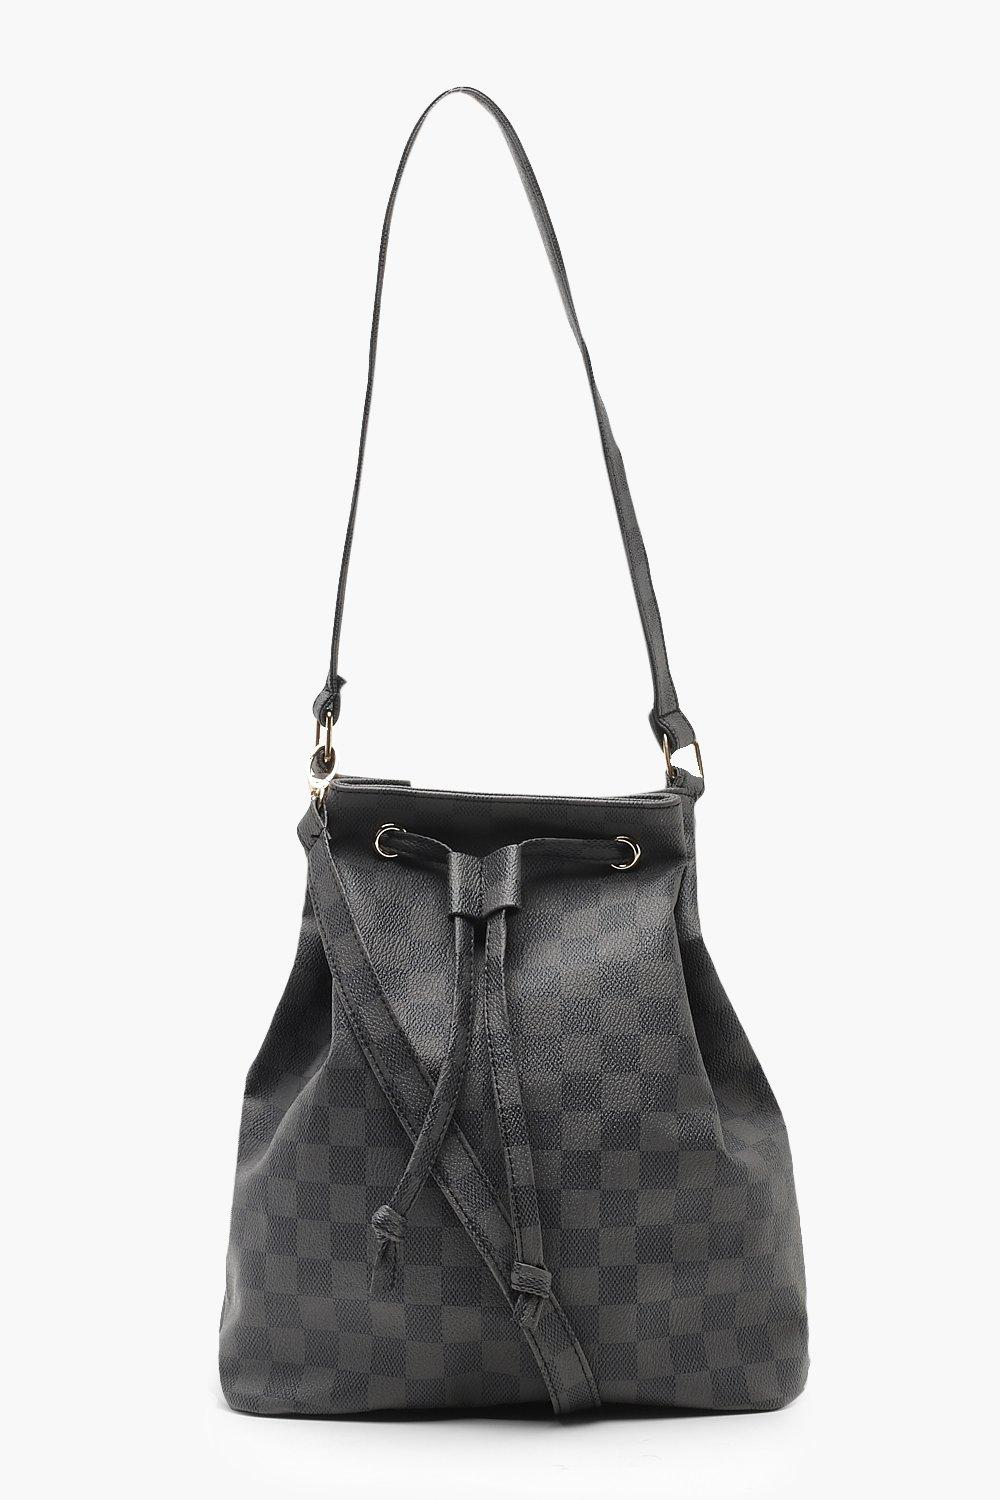 Check Duffle Bag With Cross Body Strap